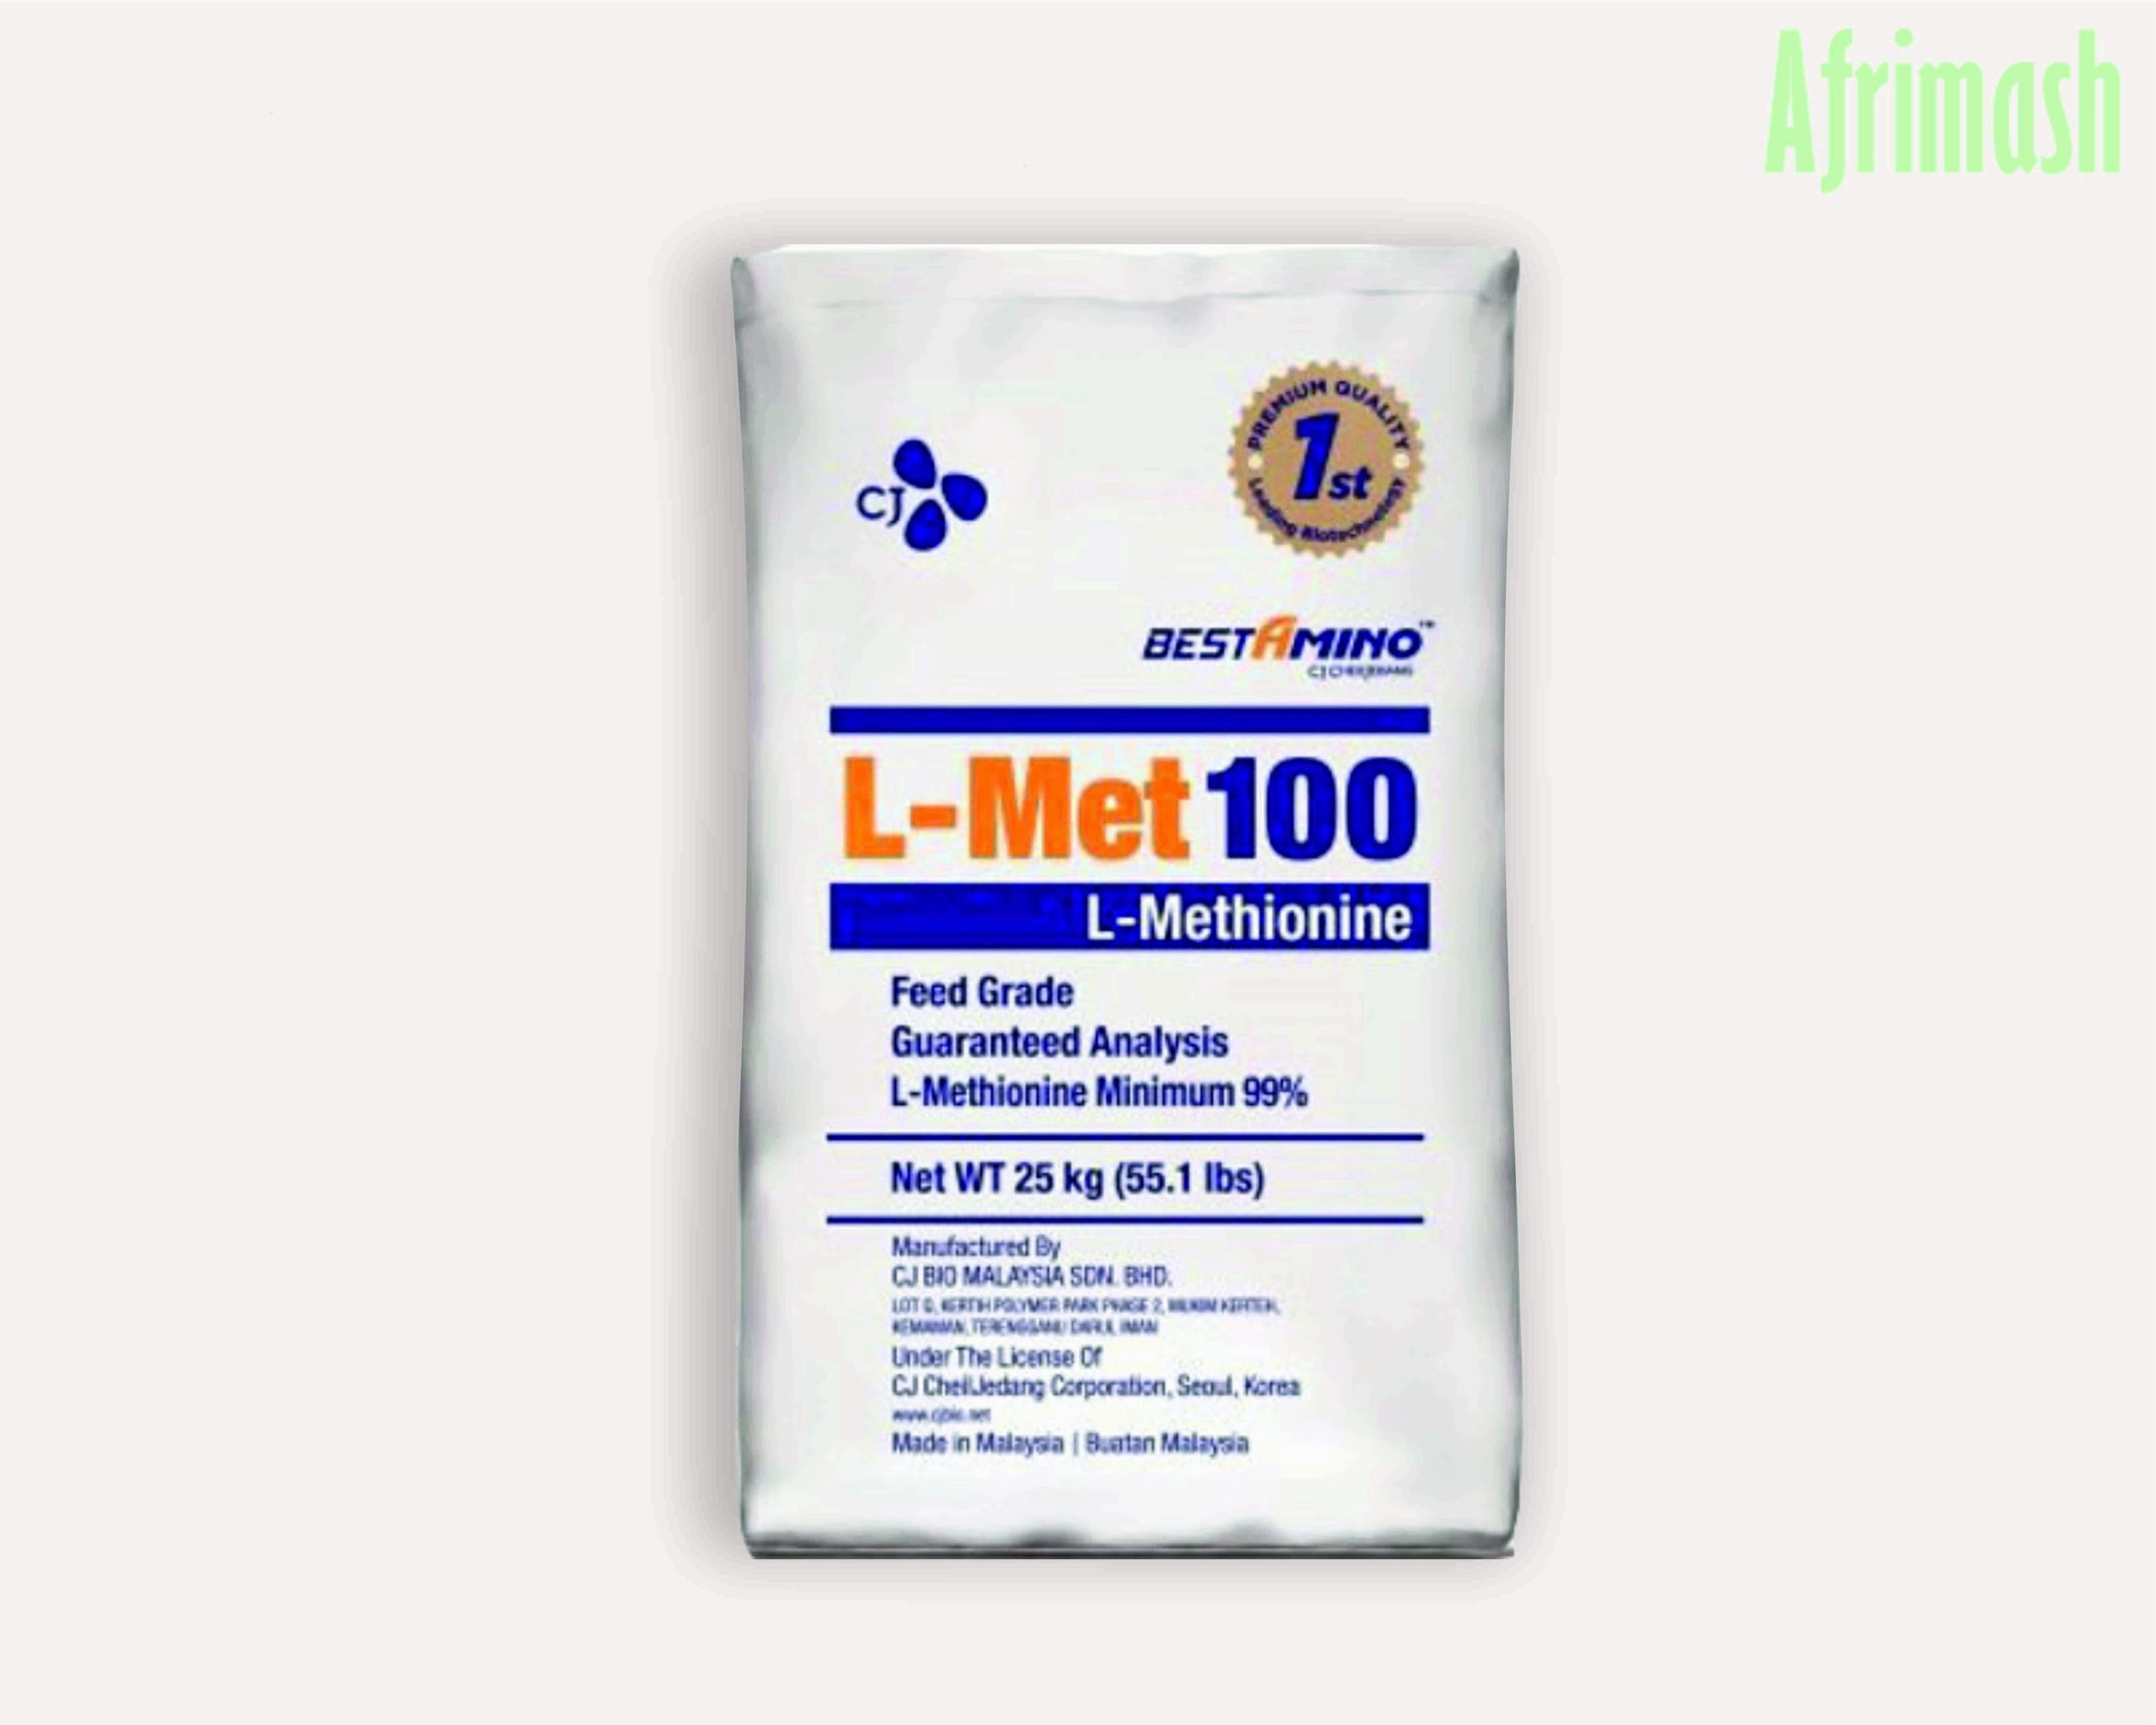 Feed grade L-methionine